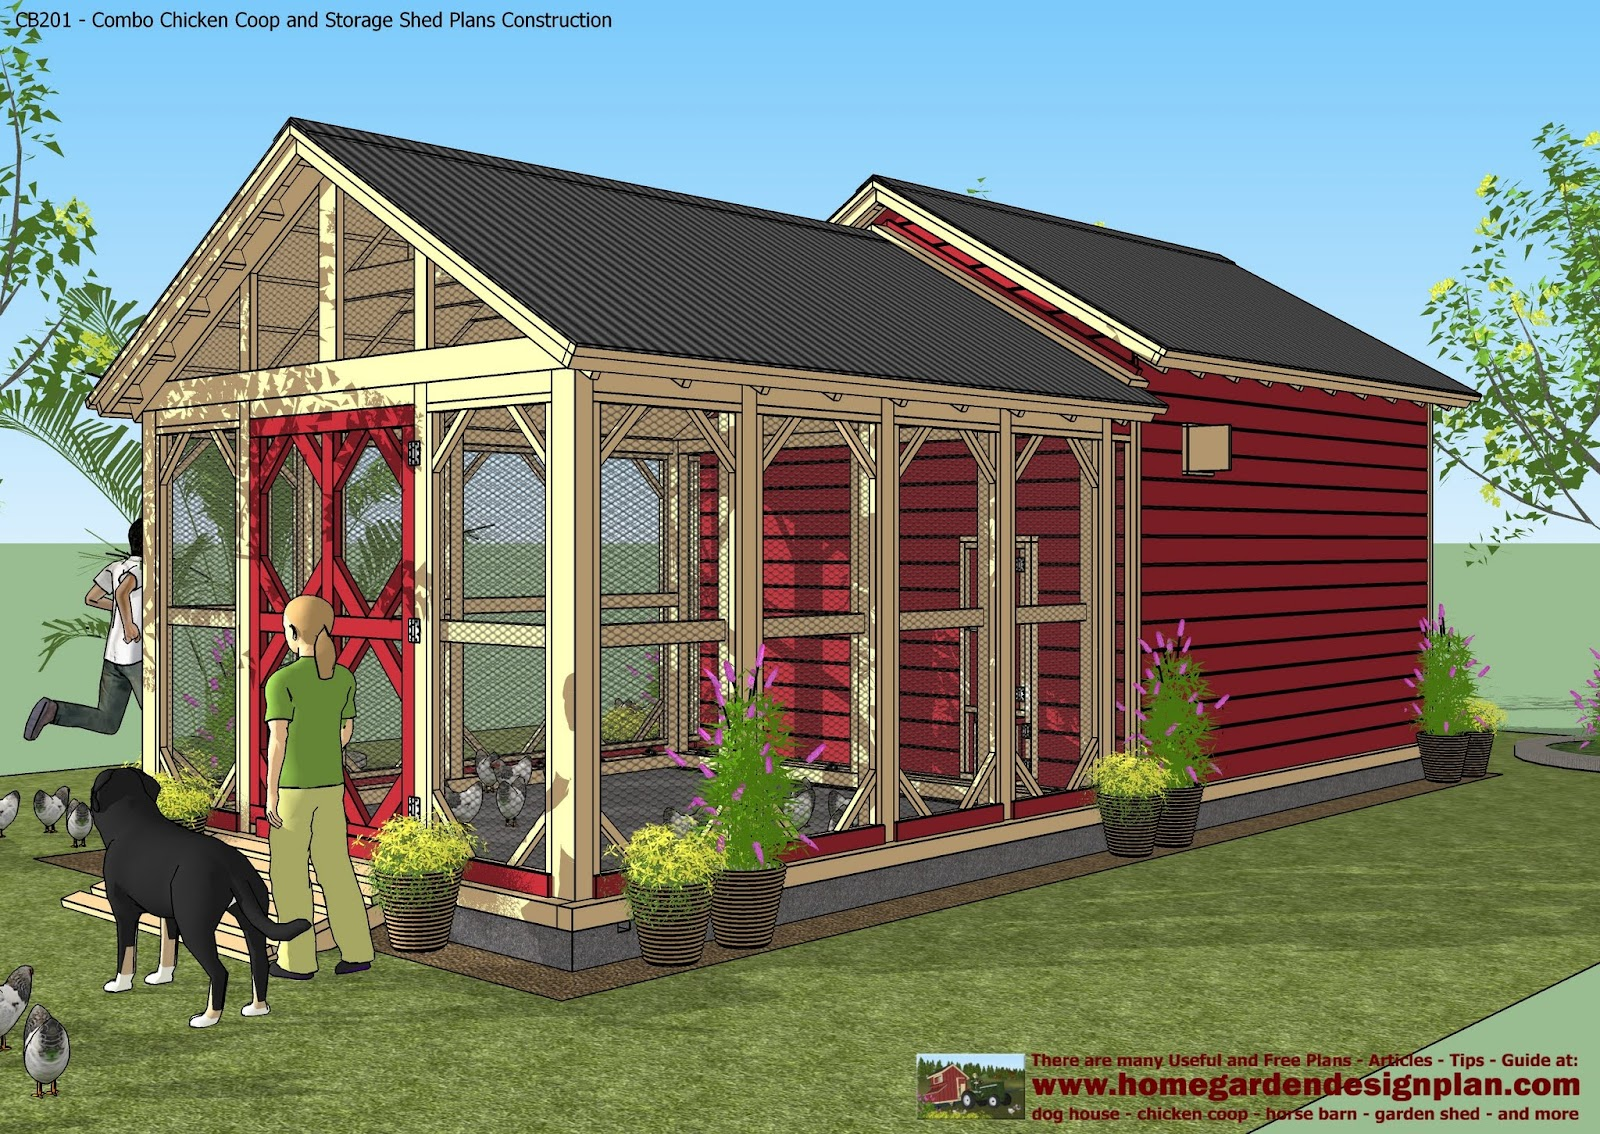 a with craigslist as sheds all red fully roof site shed double and doors storage are amish assembled building delivered your to